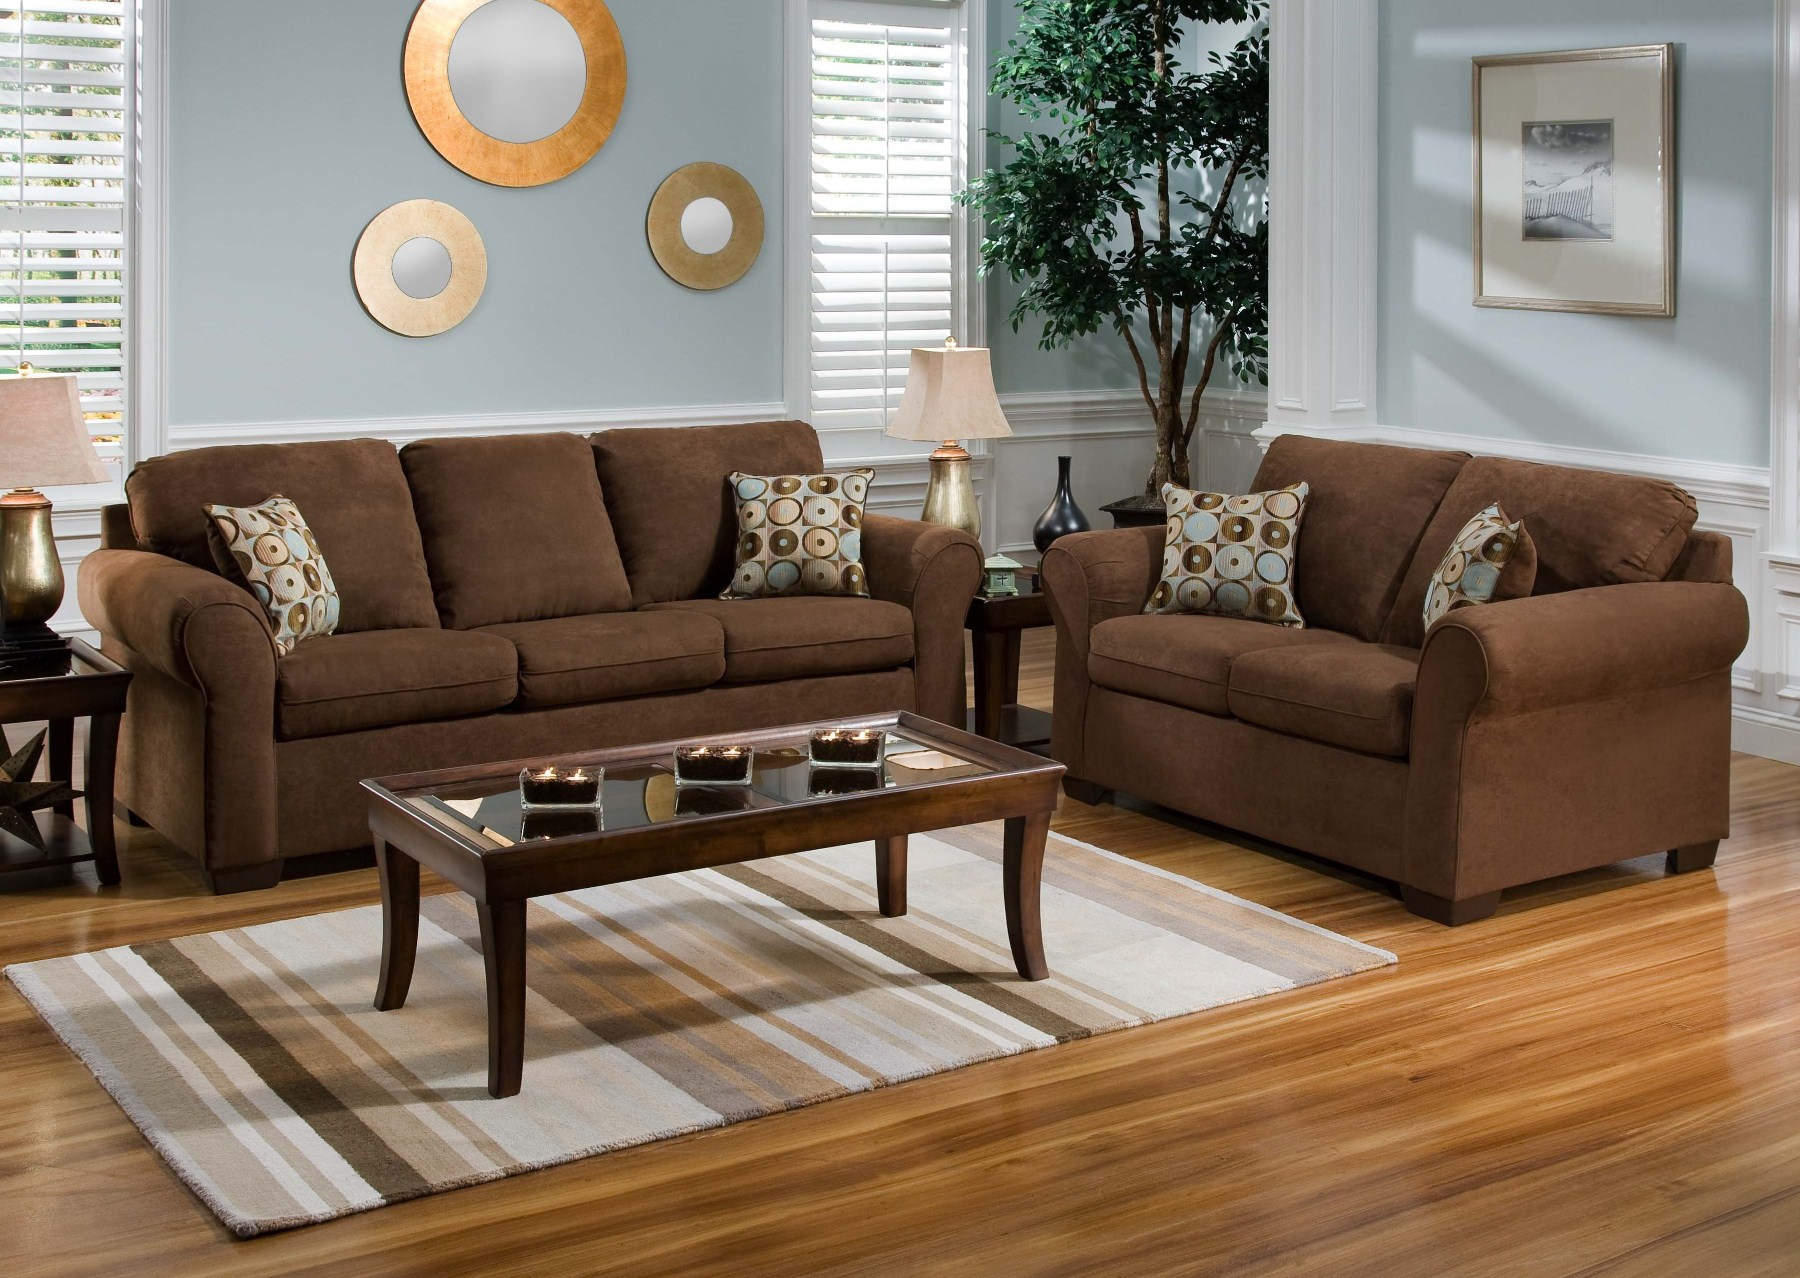 20 Things To Keep In Mind When Opting For Brown Living Room | Hawk Haven